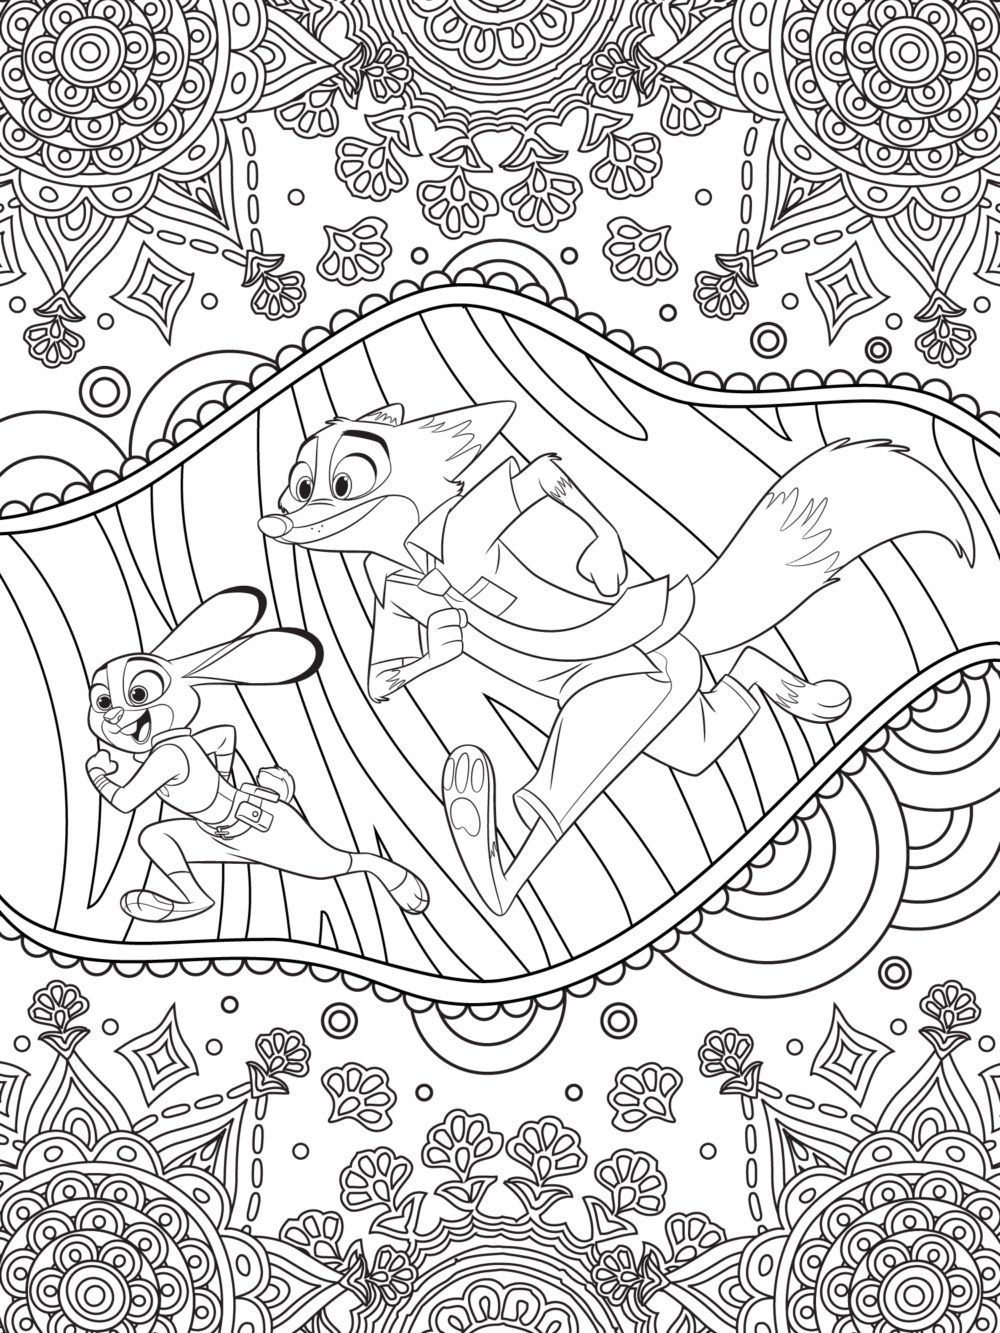 Disney princess art therapy colouring book - Celebrate National Coloring Book Day With